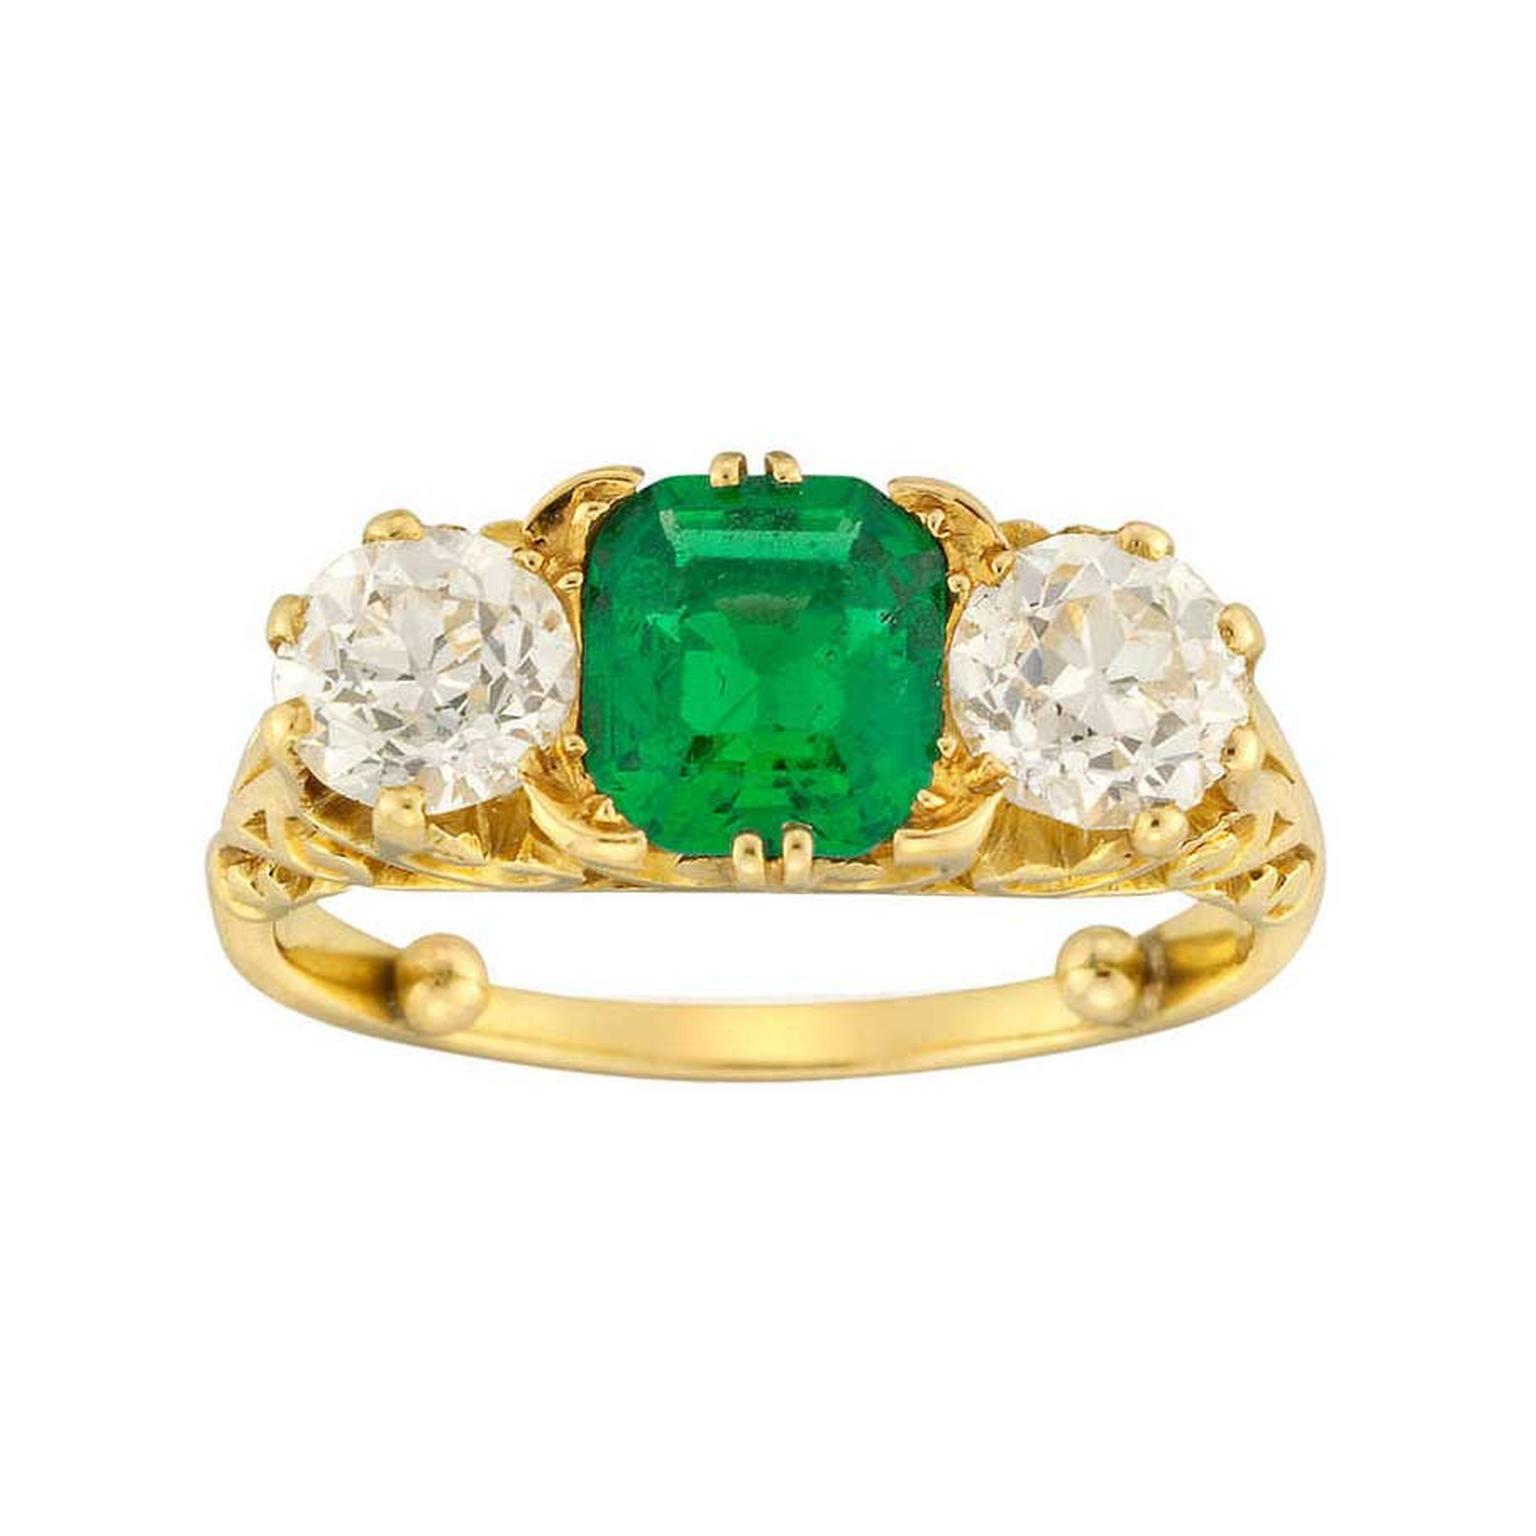 Bentley Skinner emerald diamond ring